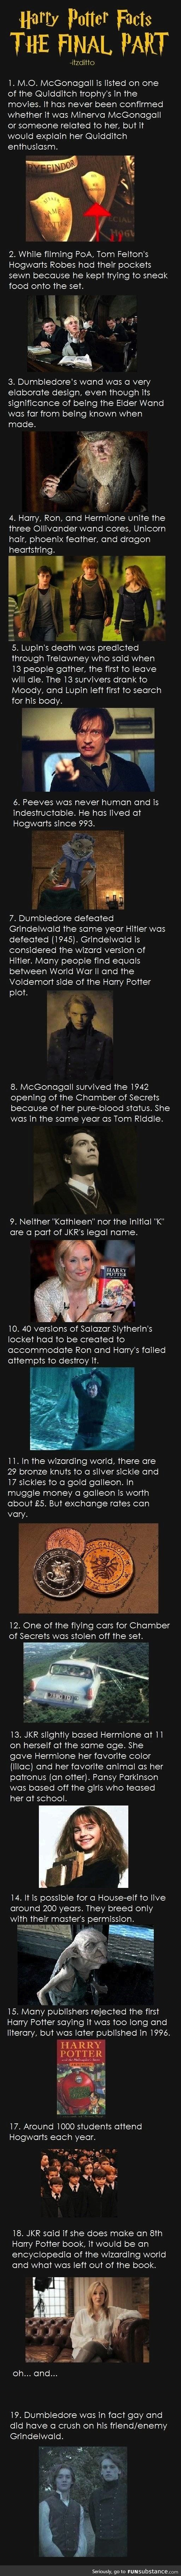 More harry potter facts, for those who don't know